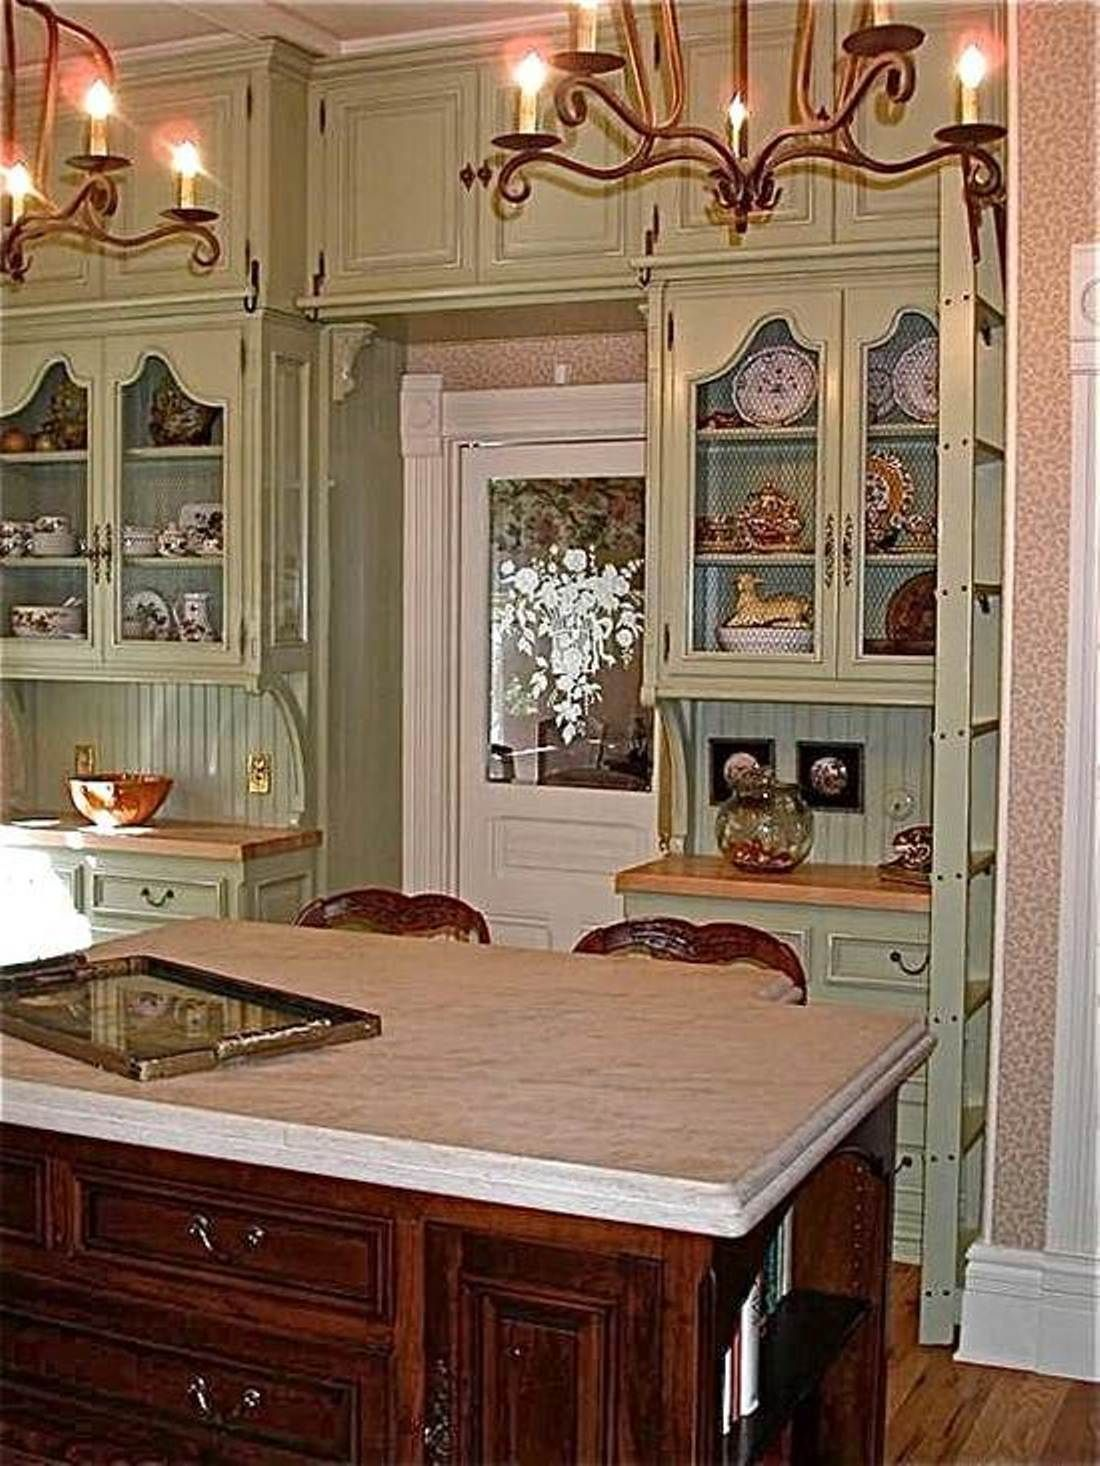 Nice victorian style kitchen my 1920 39 s home pinterest for Victorian kitchen designs